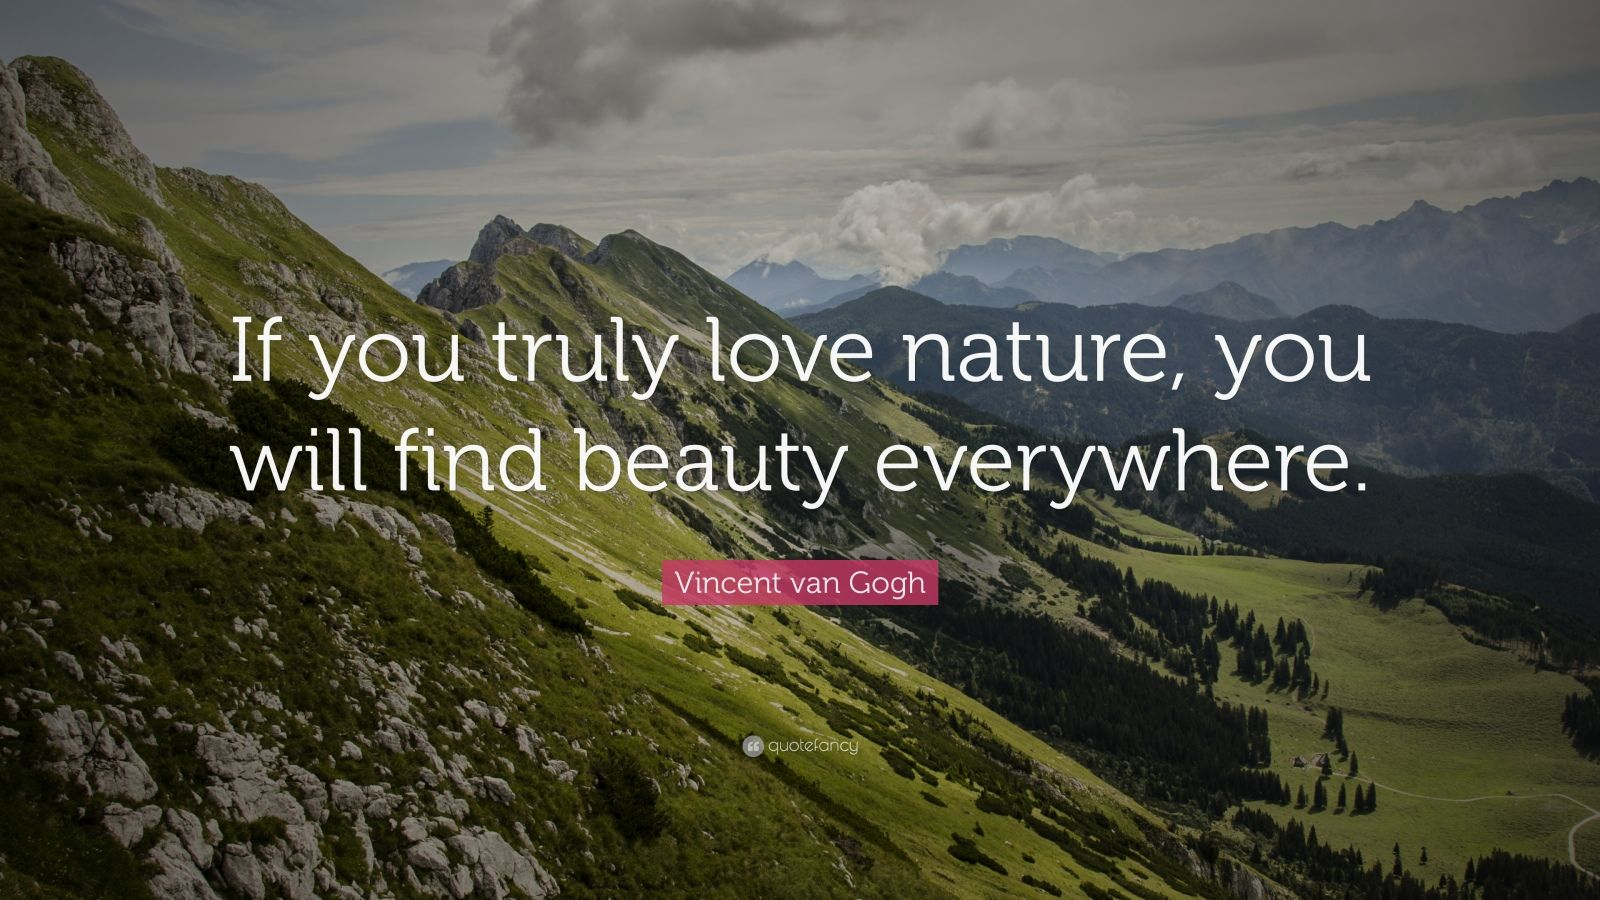 Vincent van Gogh Quote: ?If you truly love nature, you will find ...